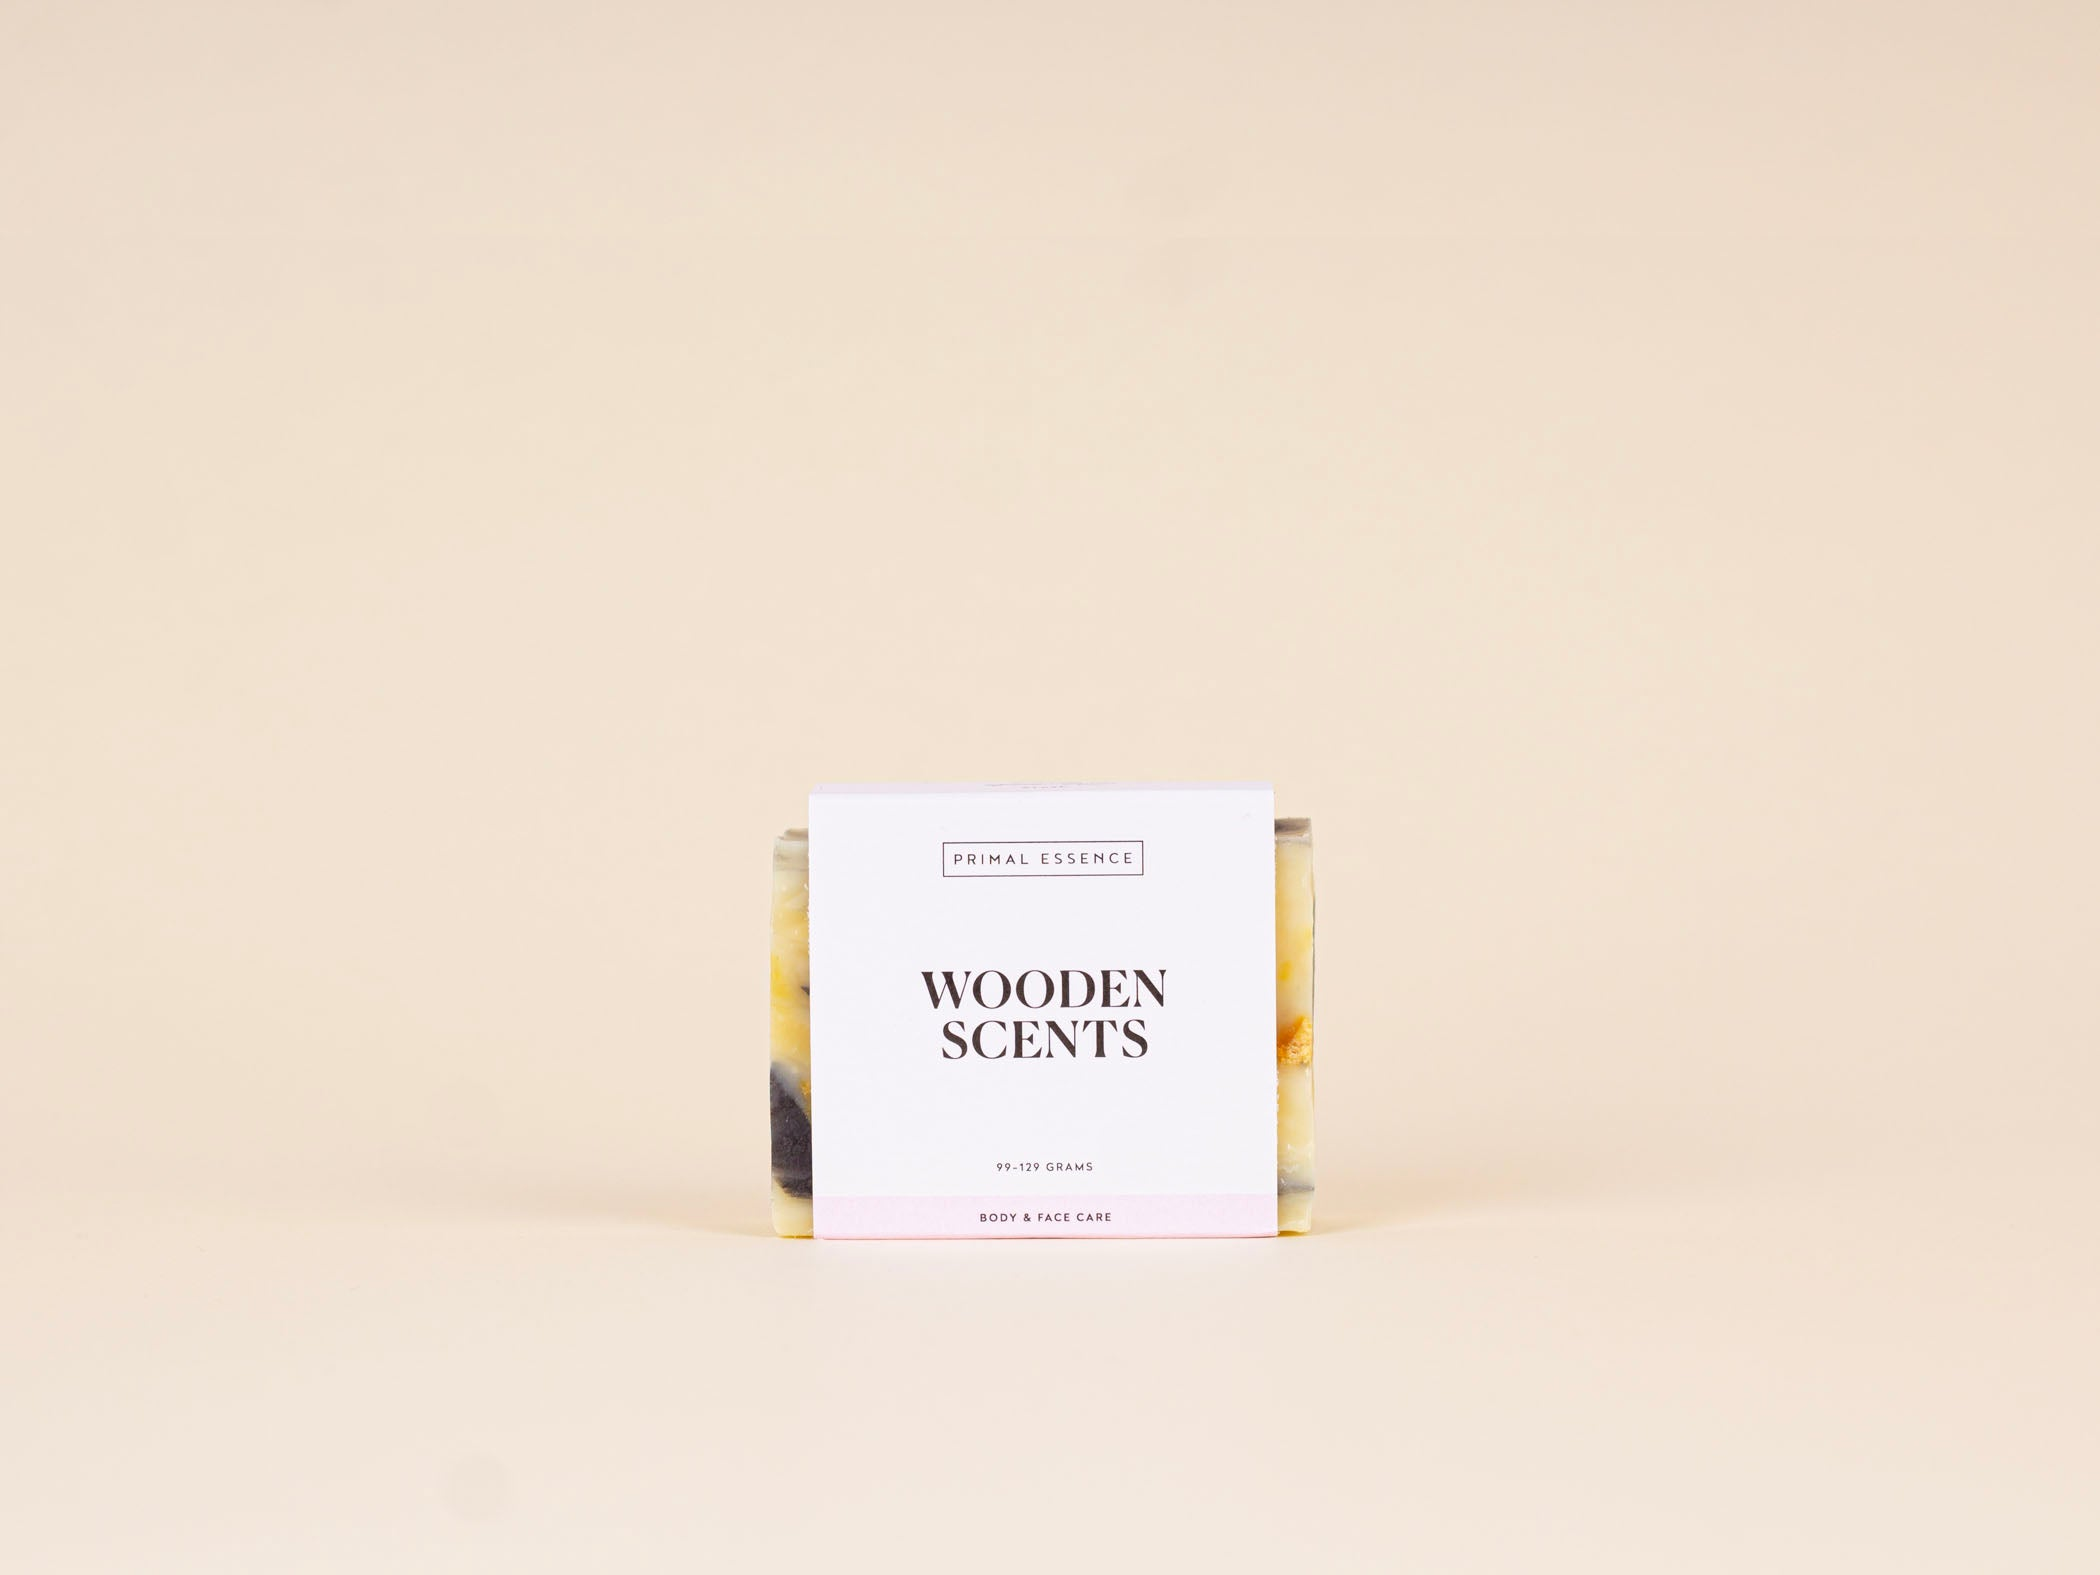 Wooden Scents